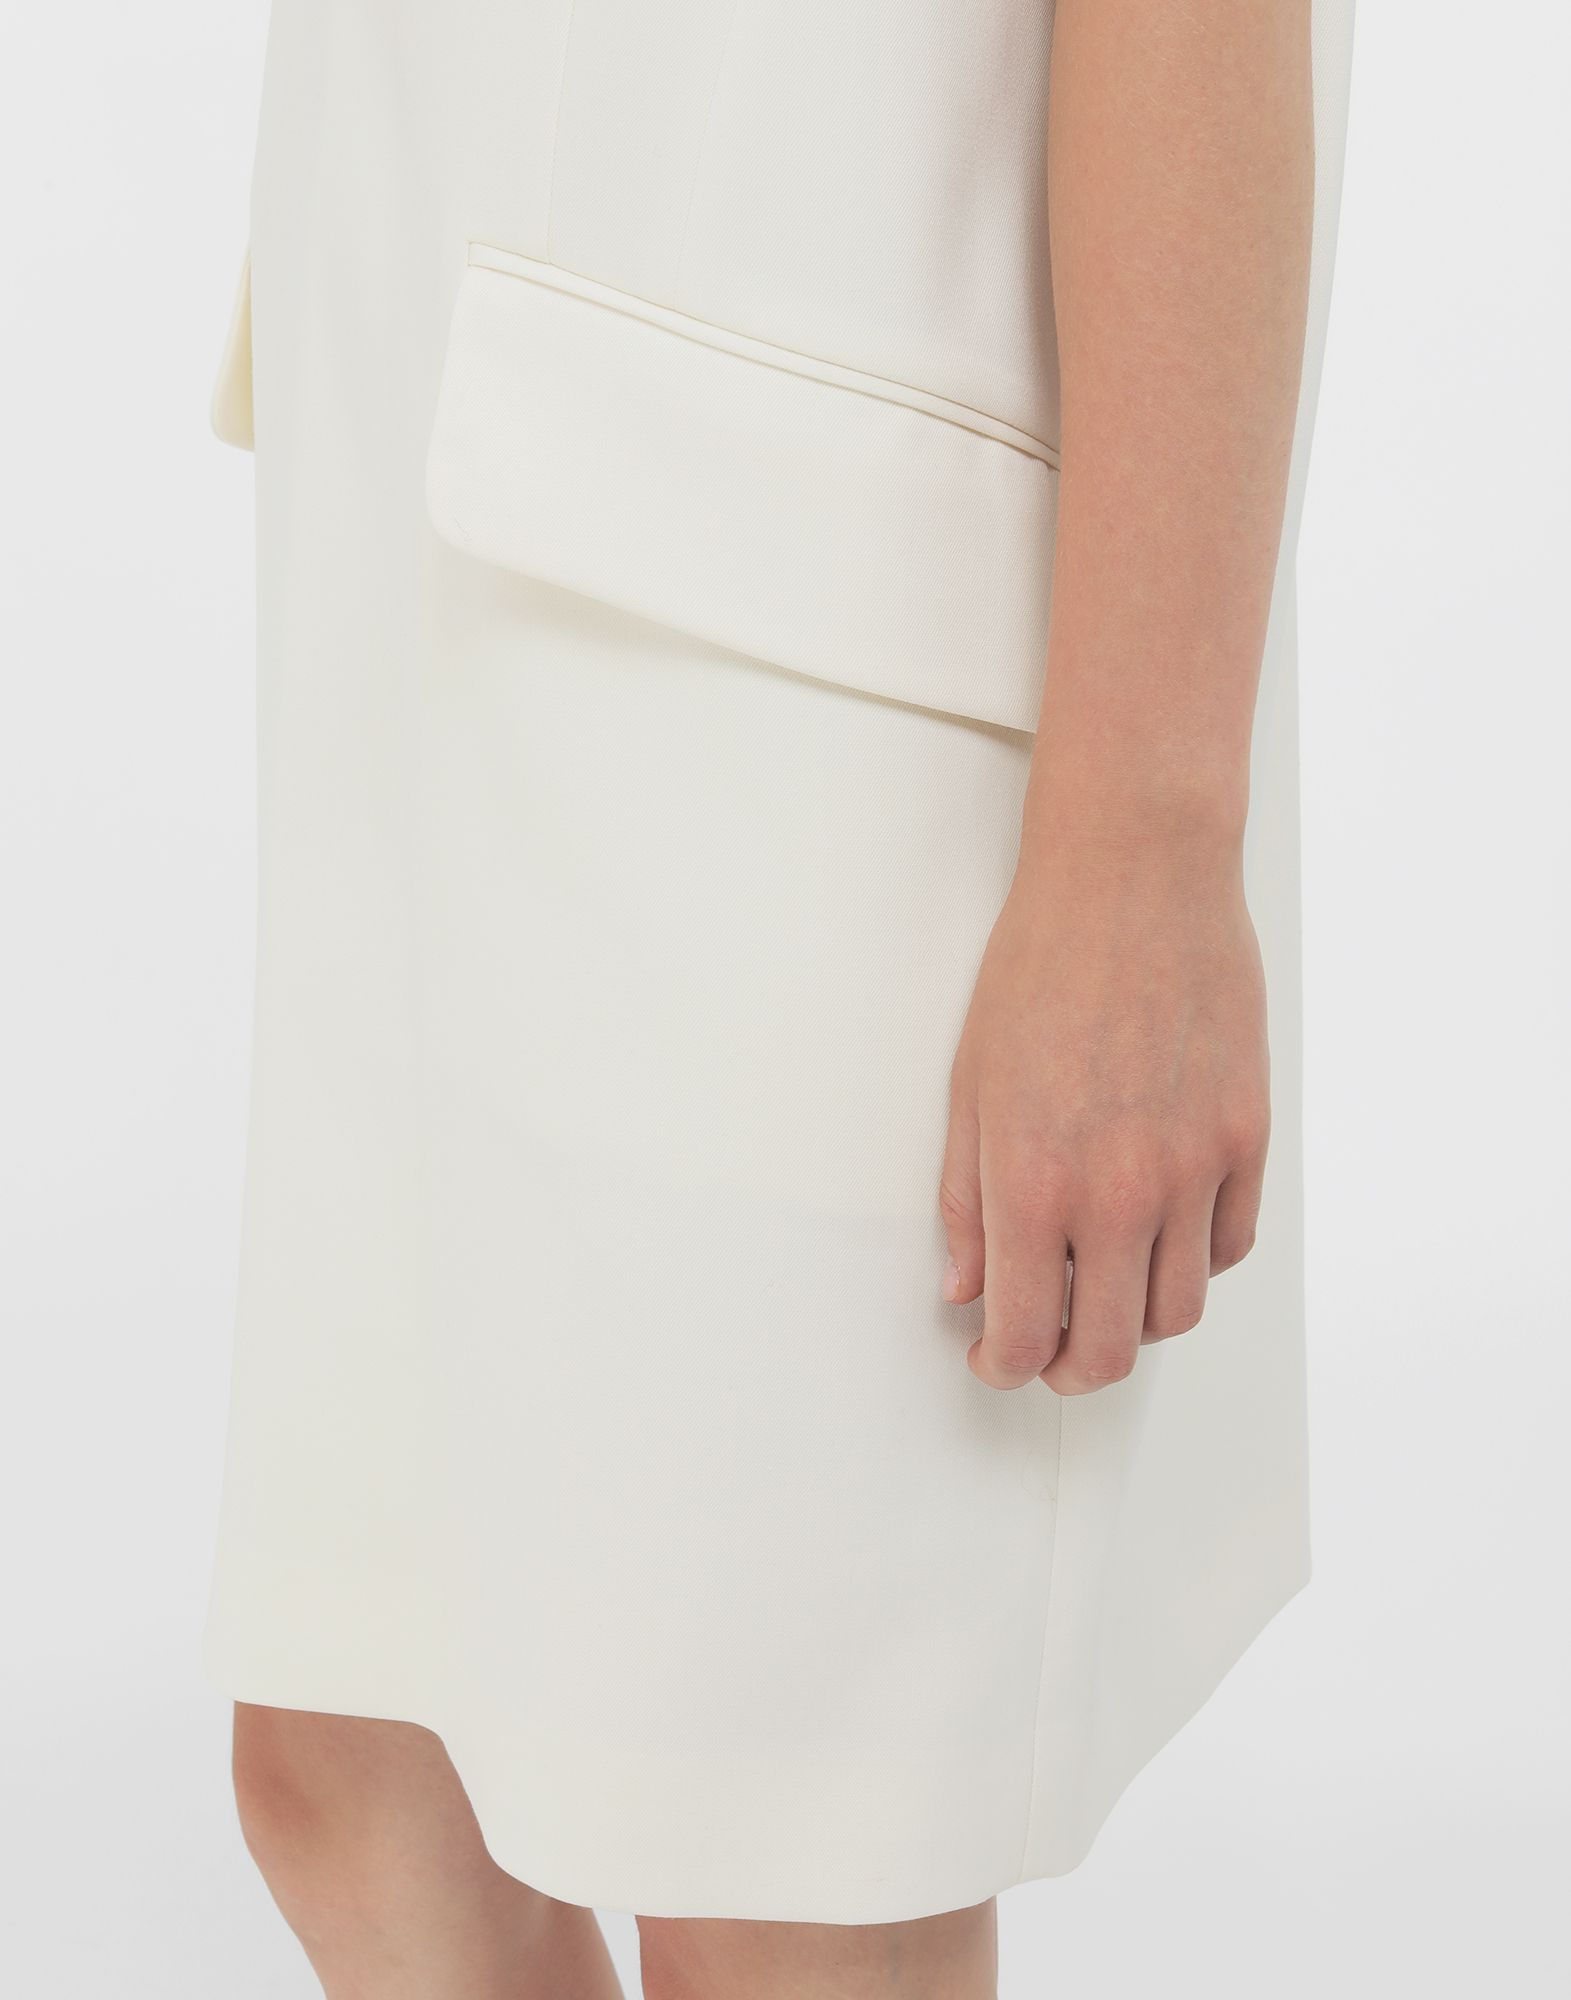 MM6 MAISON MARGIELA Décolleté dress Short dress Woman b